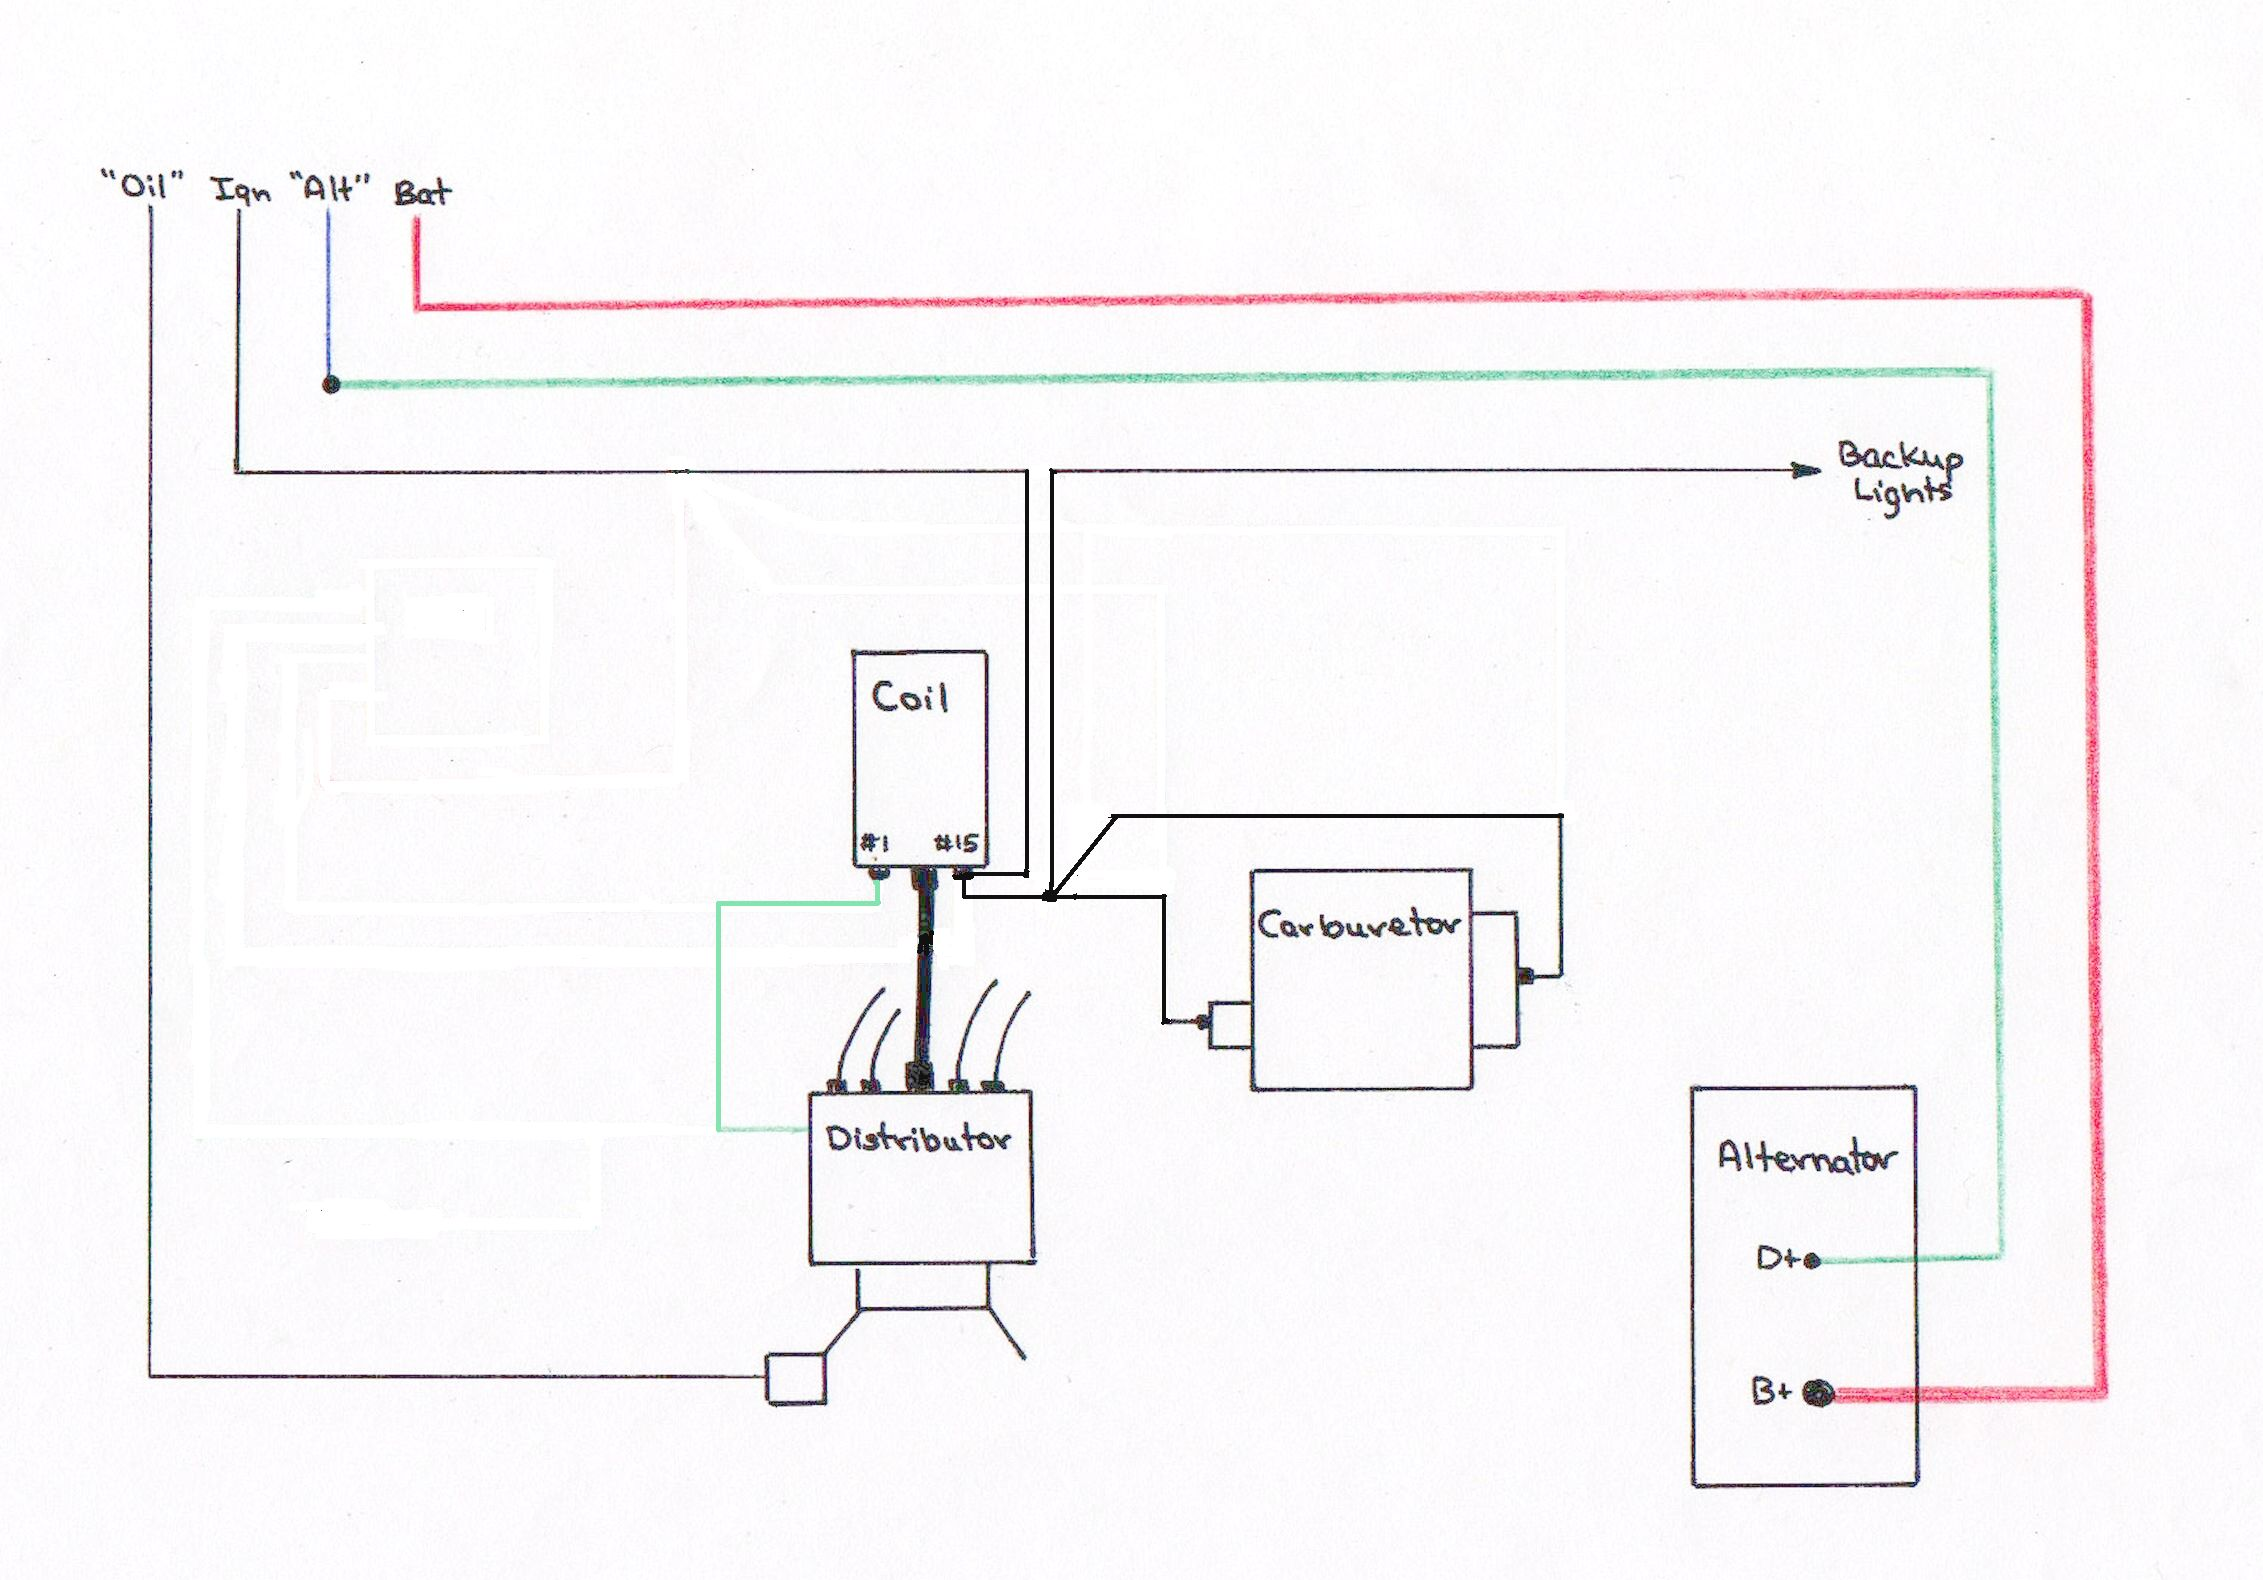 handdrawn_schematic alternator wiring wiring diagram for alternator at fashall.co